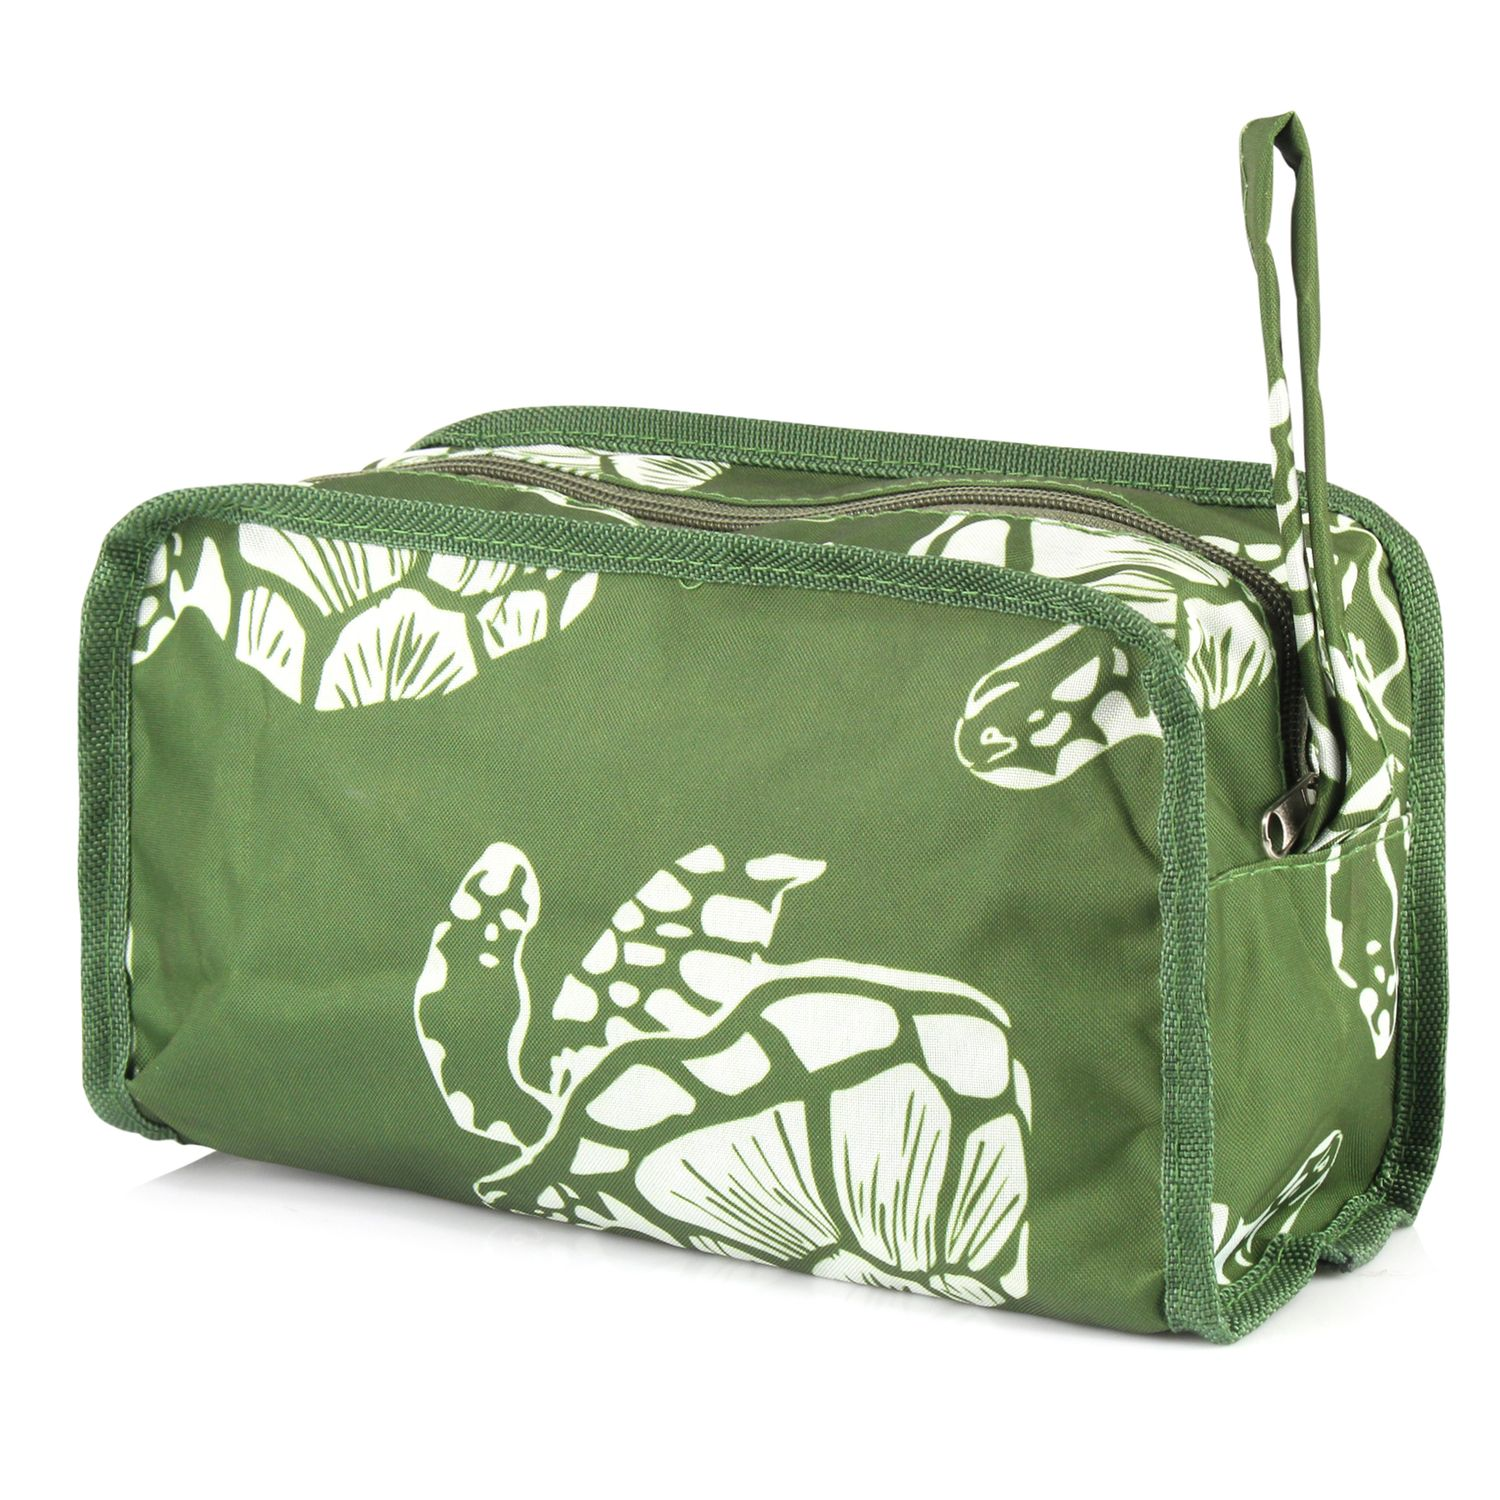 Travel Cosmetic Bag for Women by Zodaca Multifunction Toiletry Pouch Makeup Organizer Zip Storage Case - Green Turtle